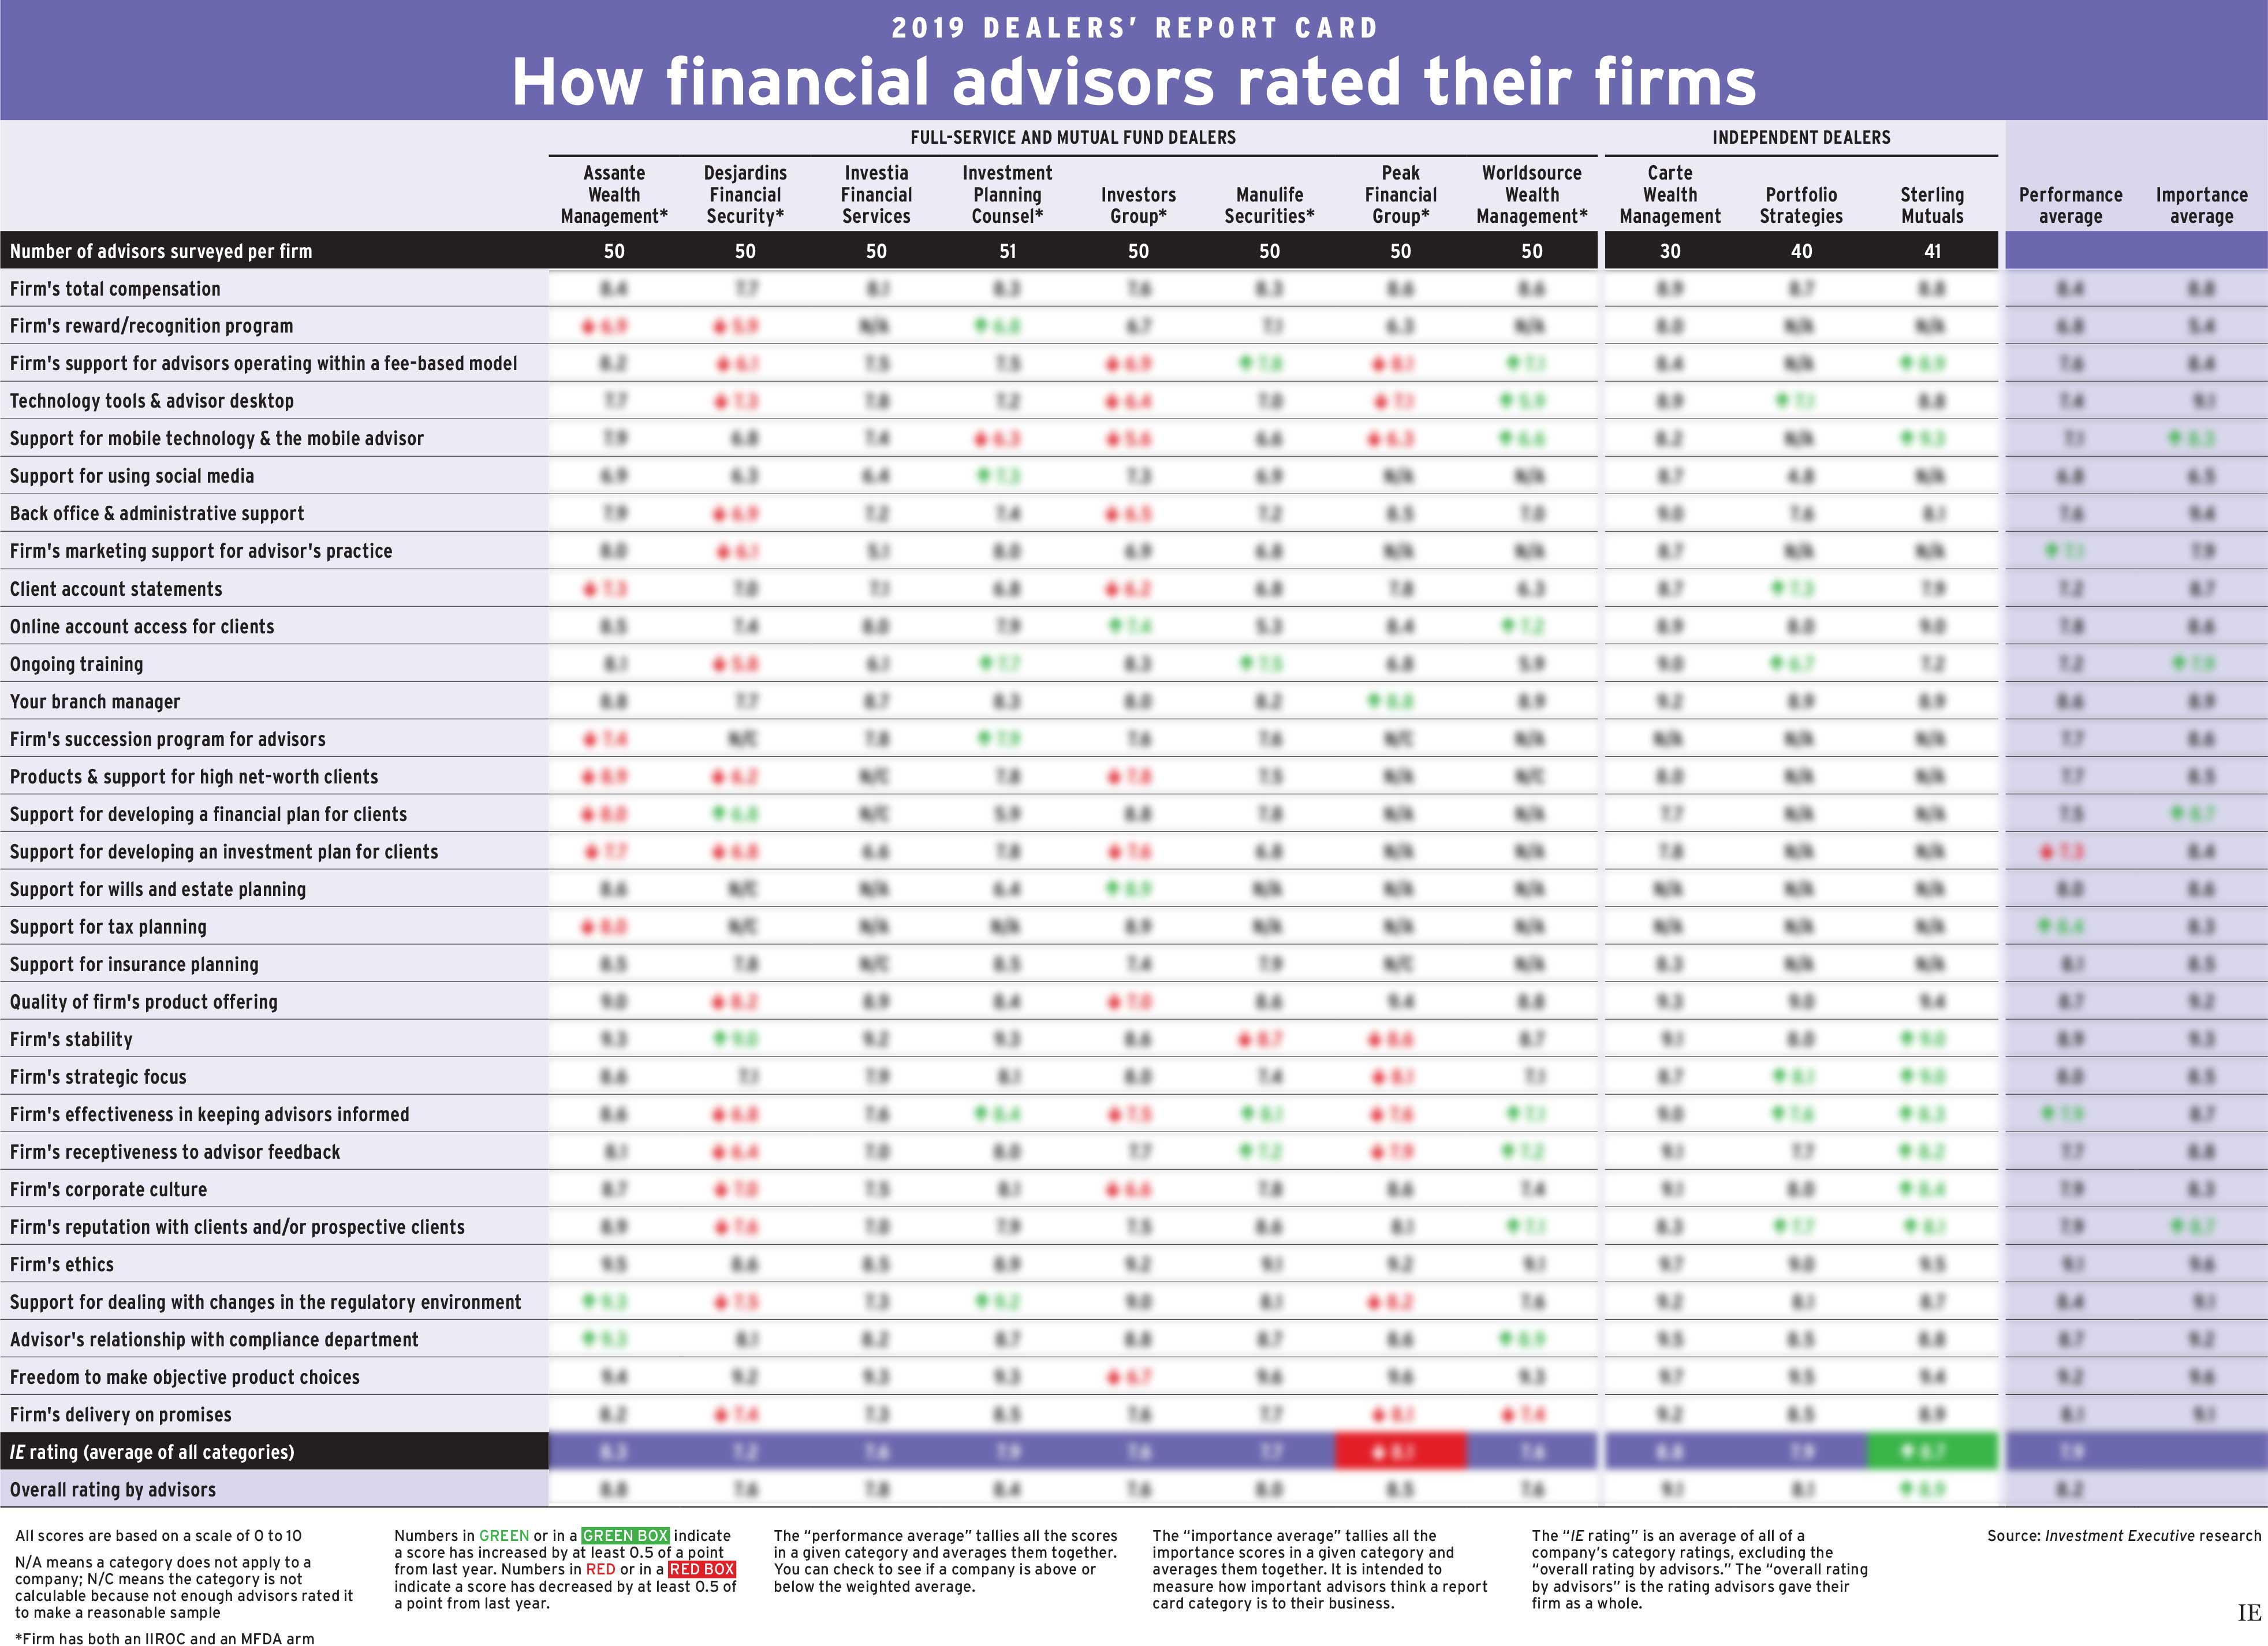 Dealers' report card 2019 chart